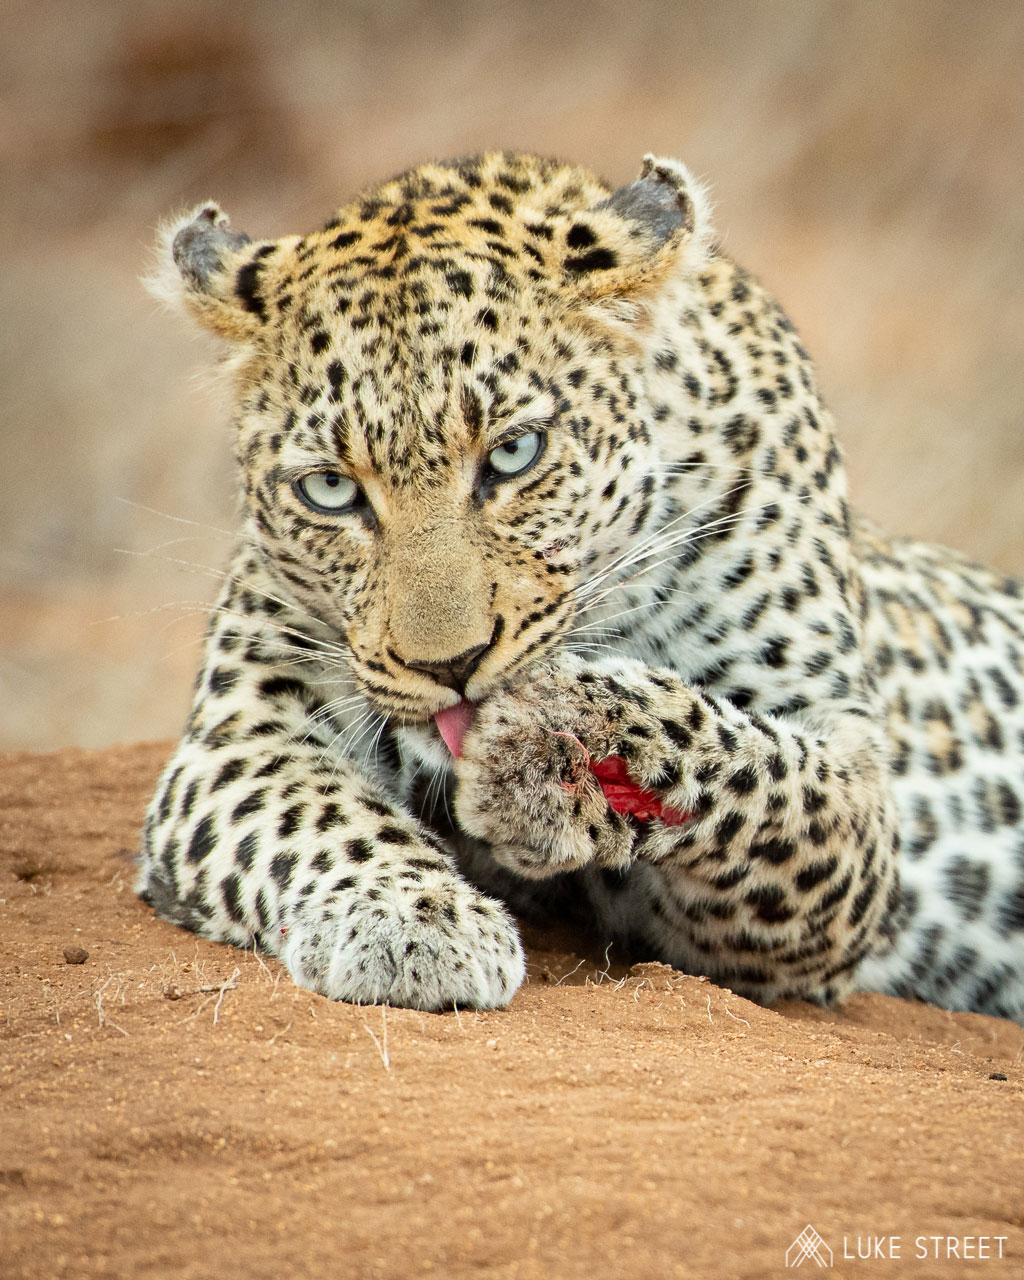 Tanda Tula - Thombela licking her wounds in the Greater Kruger